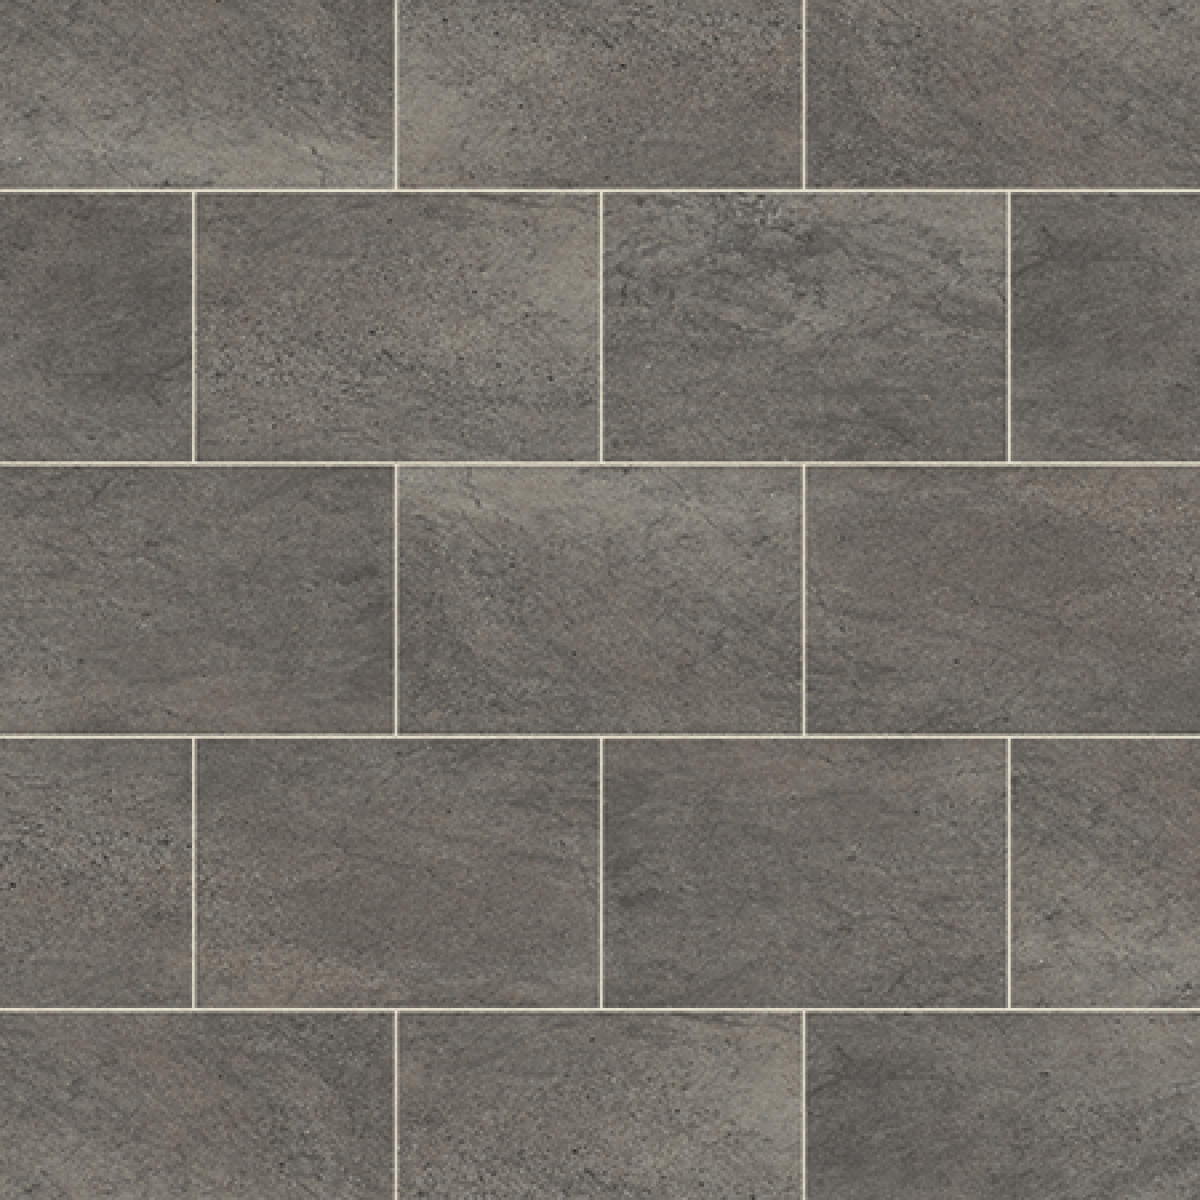 Karndean knight tile st14 cumbrian stone vinyl flooring karndean vinyl flooring the floor hut - Vinyl deck tiles ...